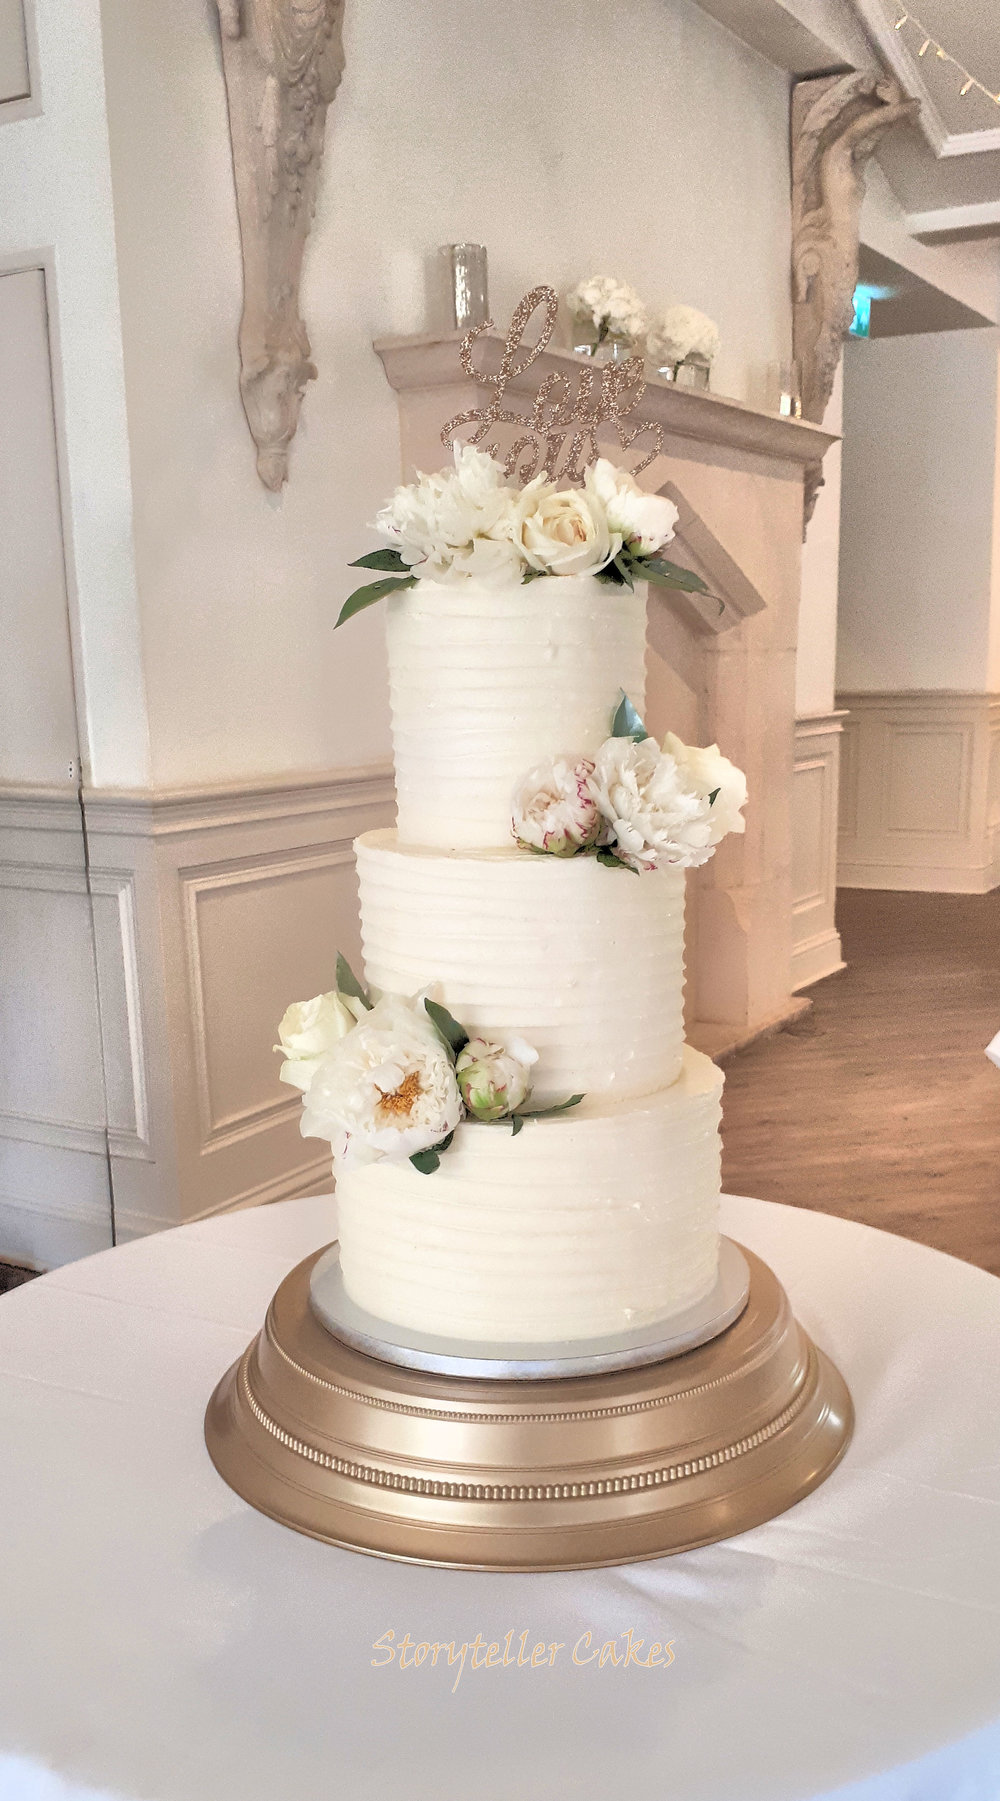 Buttercream Ruffle Wedding Cake With Fresh Peonies.jpg